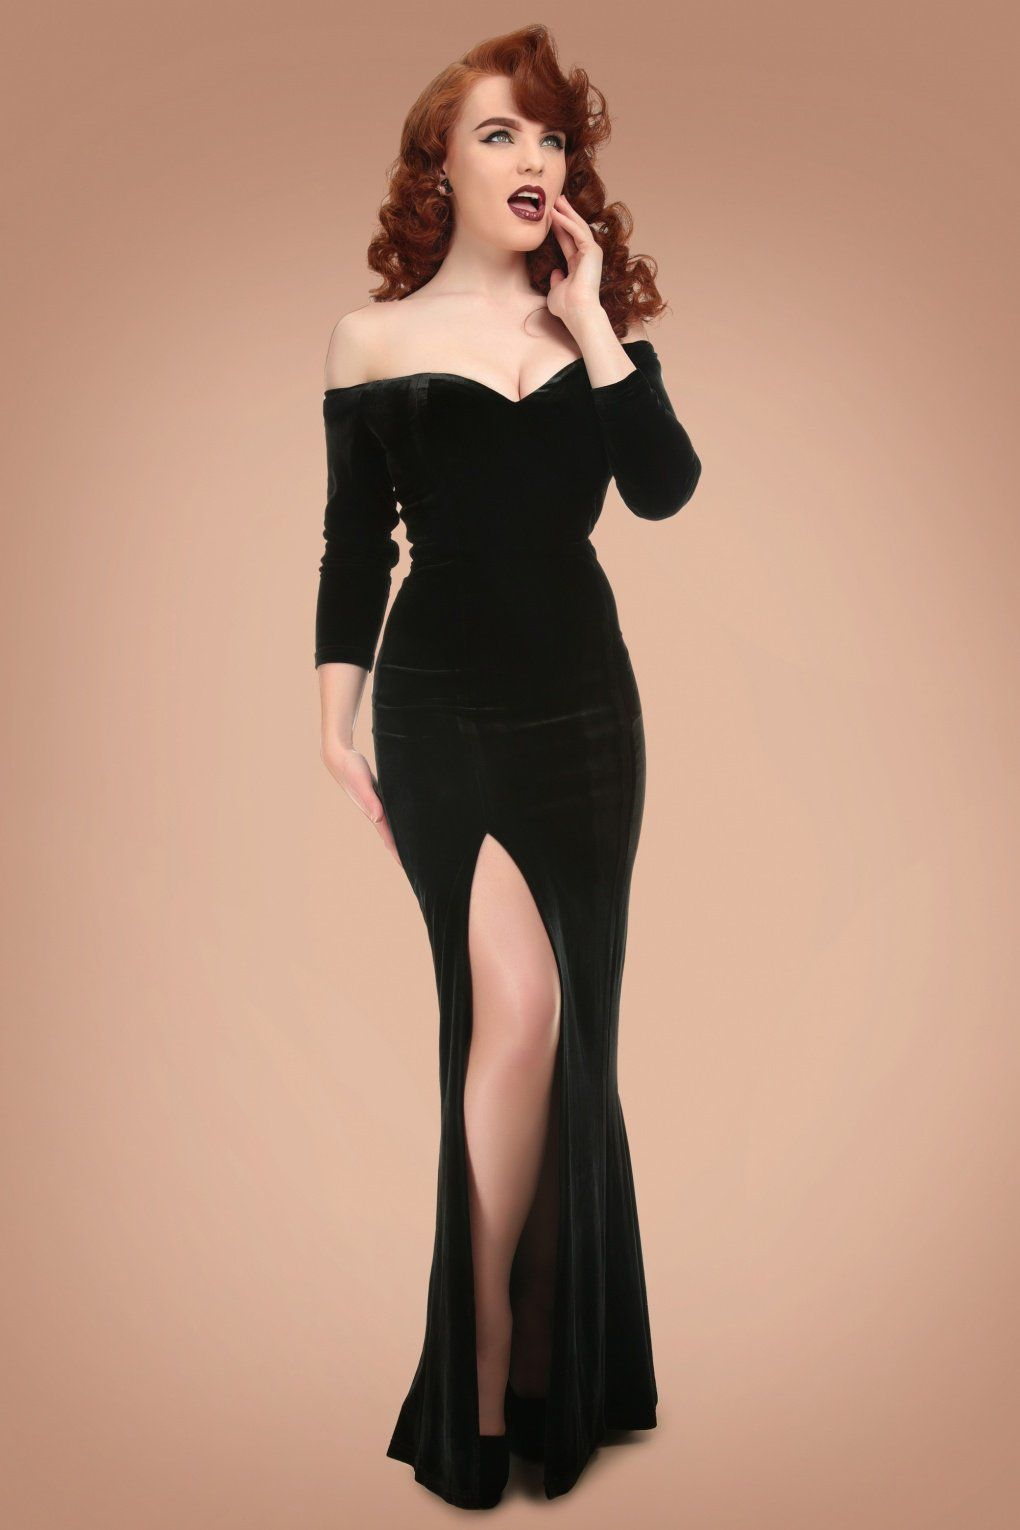 8f0a8568676b 1950s Prom Dresses   Party Dresses 50s Anjelica Velvet Maxi Dress in Black  £64.23 AT vintagedancer.com